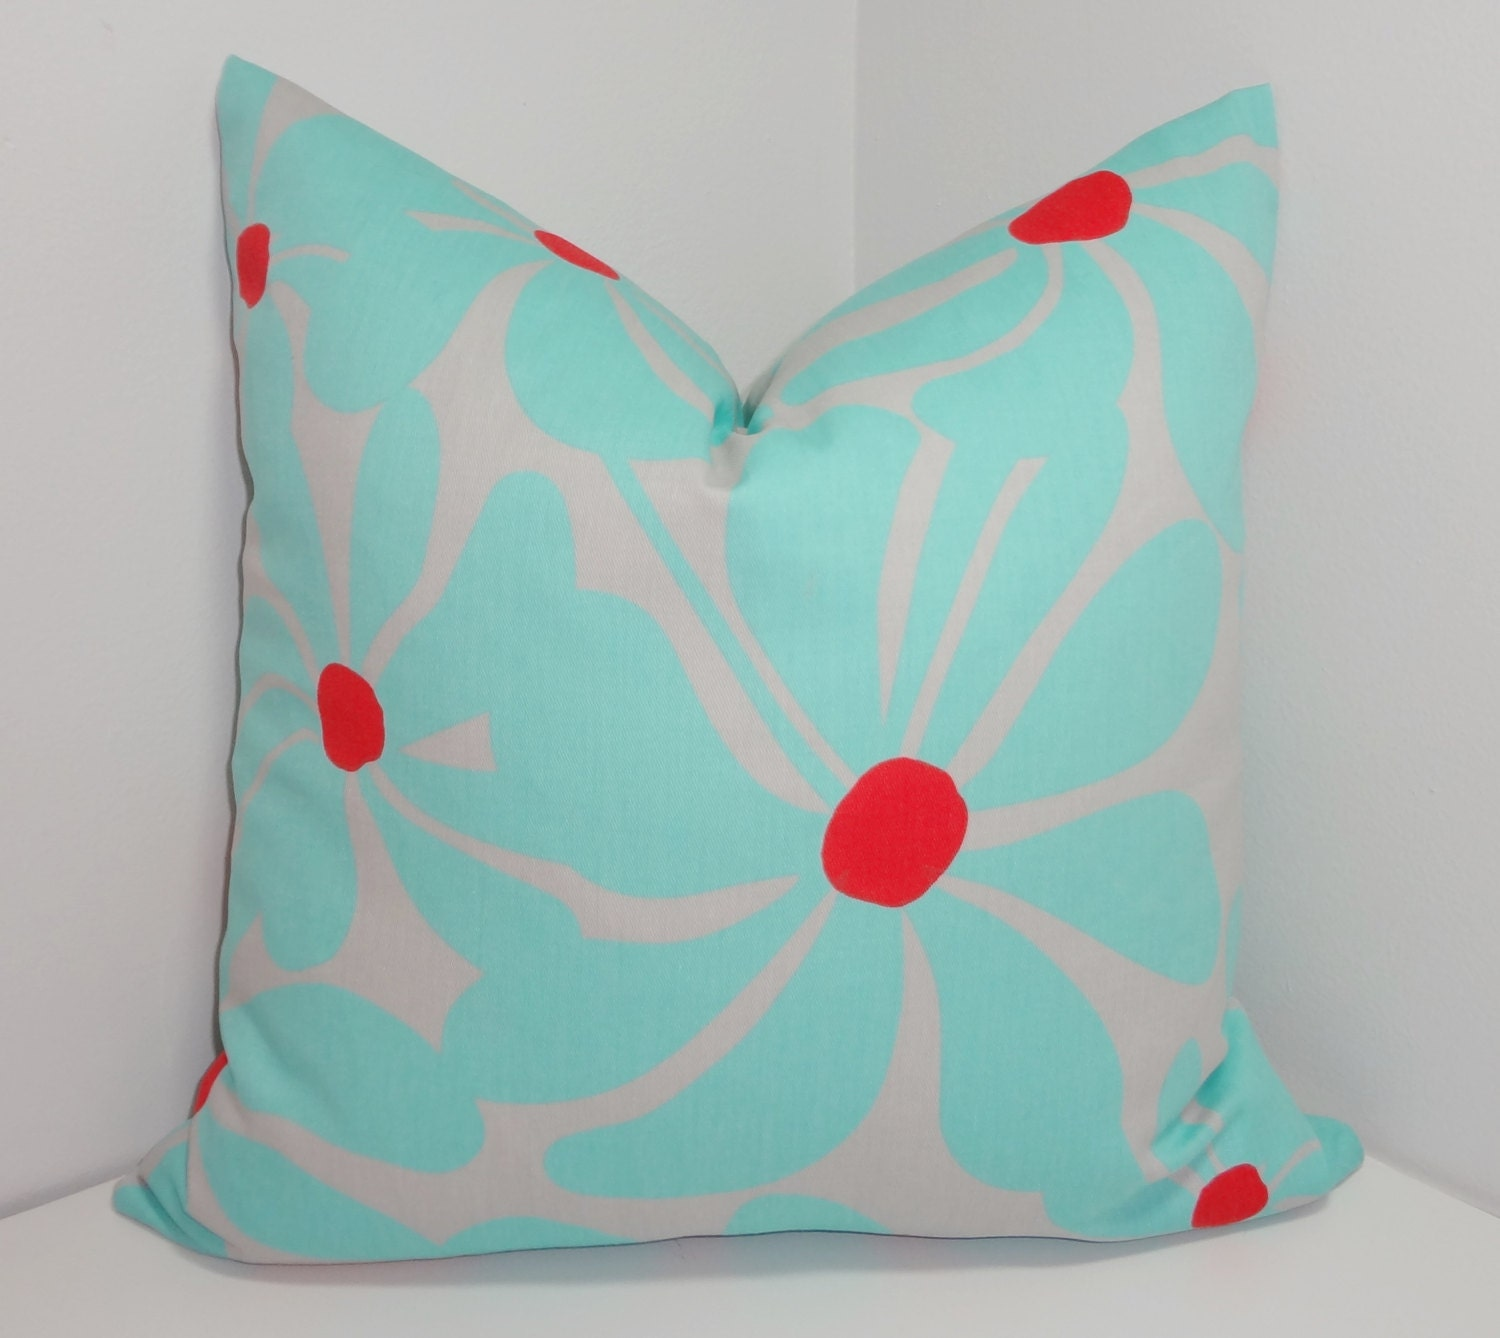 Large Blue Decorative Pillows : Decorative Pillow Large Blue Floral Red & Grey Print Pillow